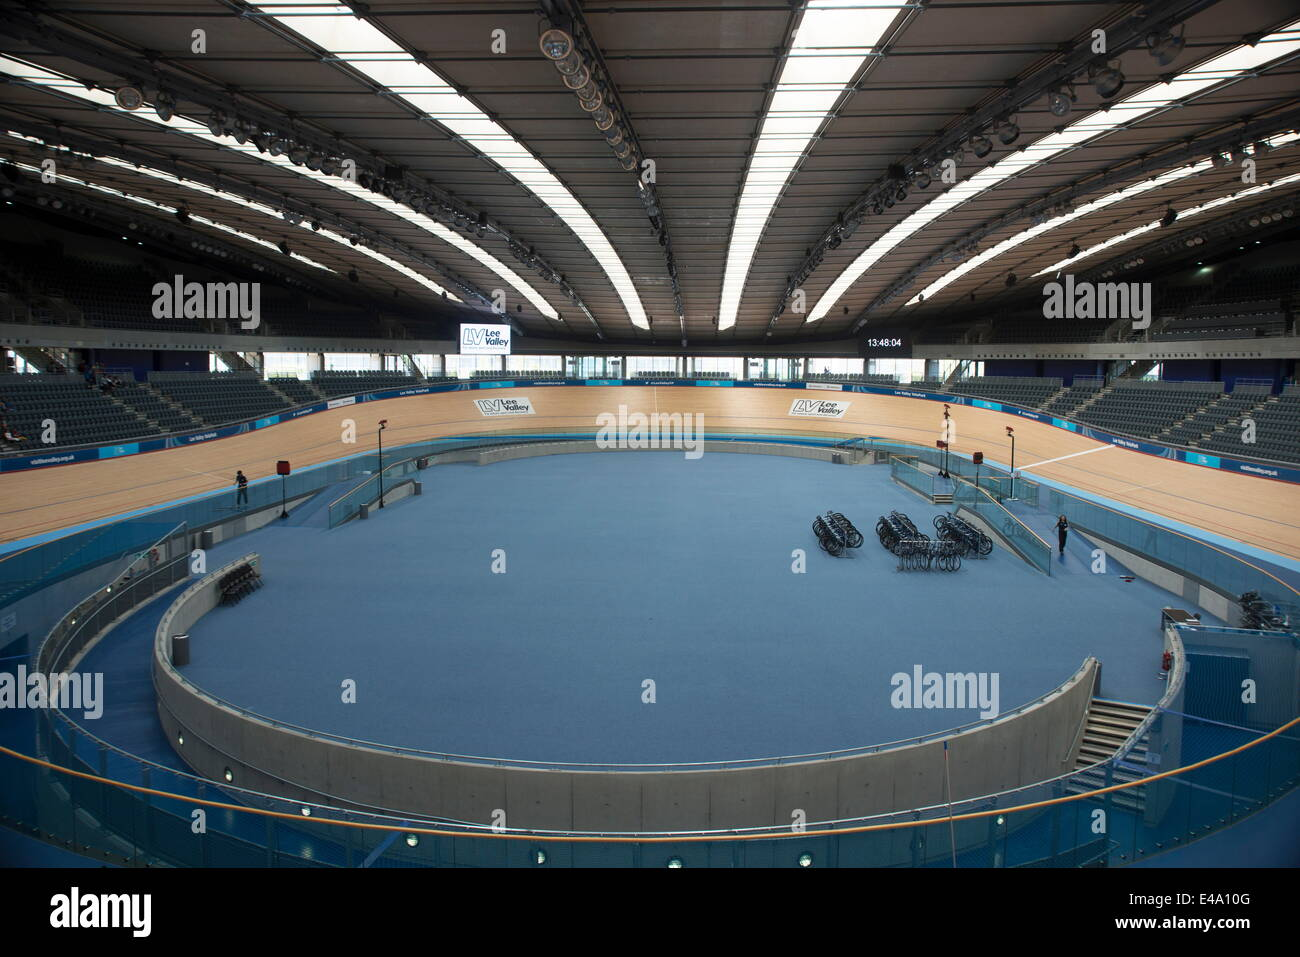 Inside Bicycle Track In The Velodrome Queen Elizabeth Olympic Park Stratford London E20 England United Kingdom Europe